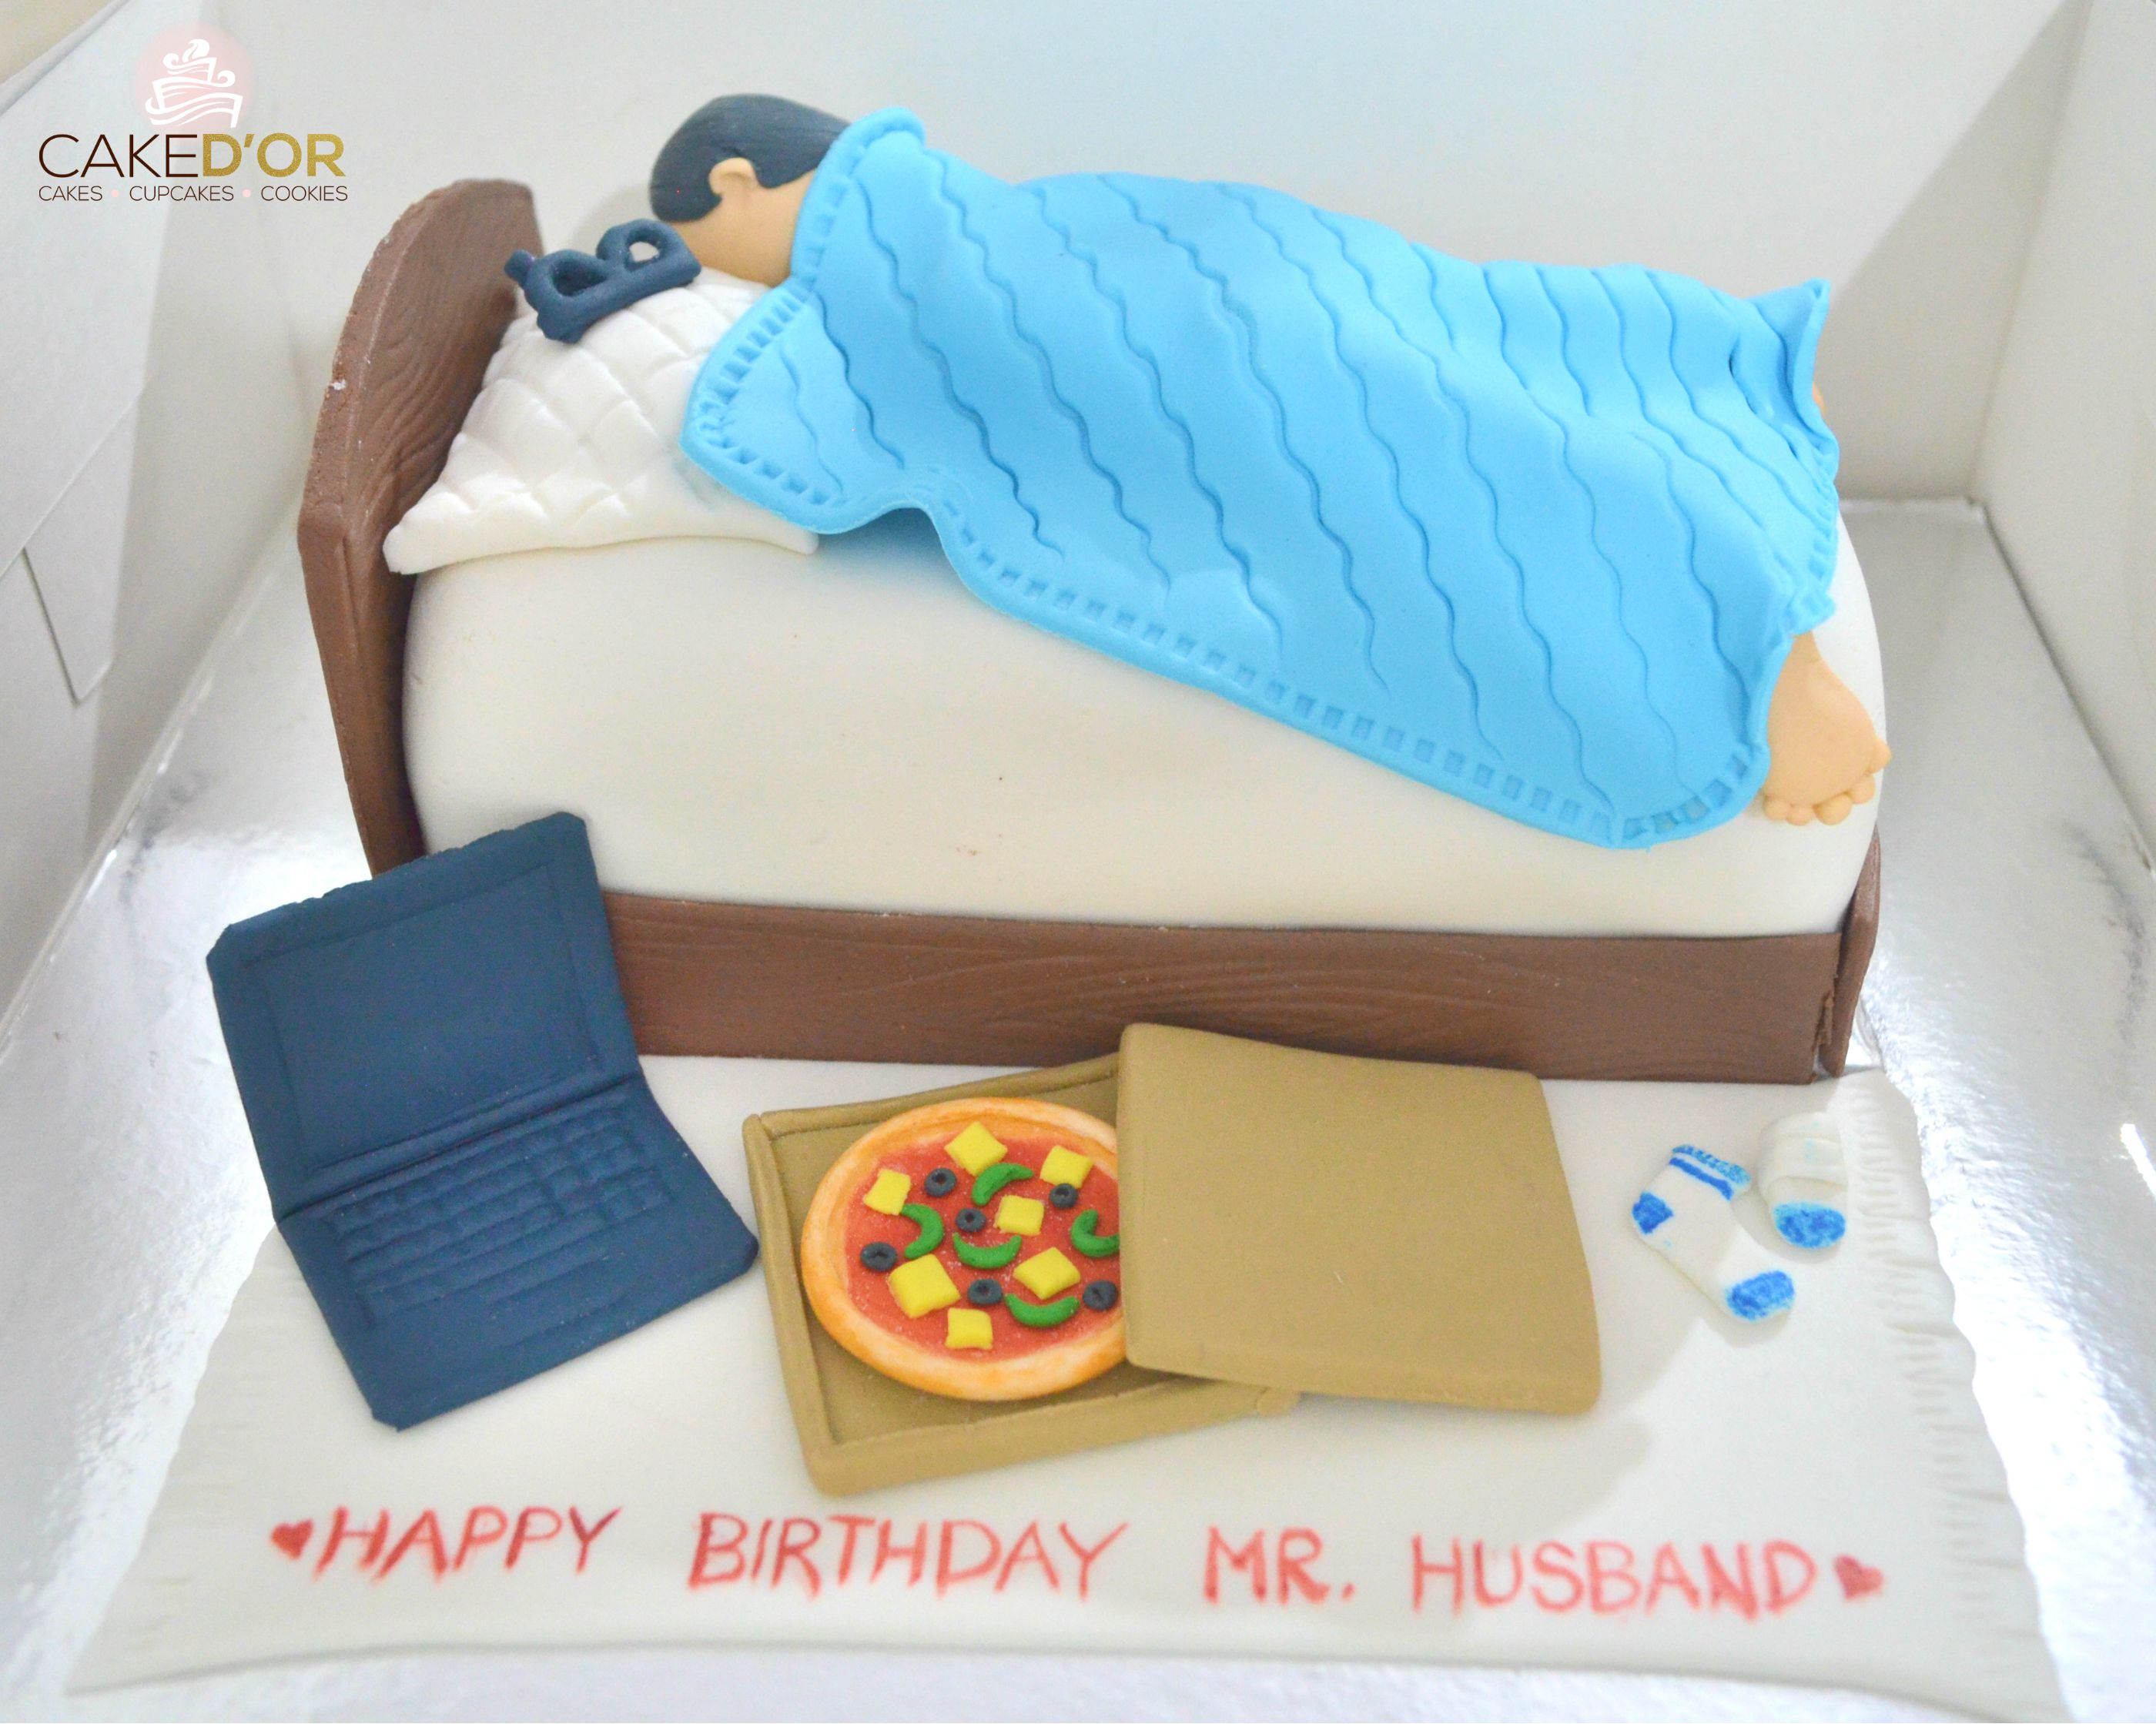 Pin On Cake D Or Theme Cakes